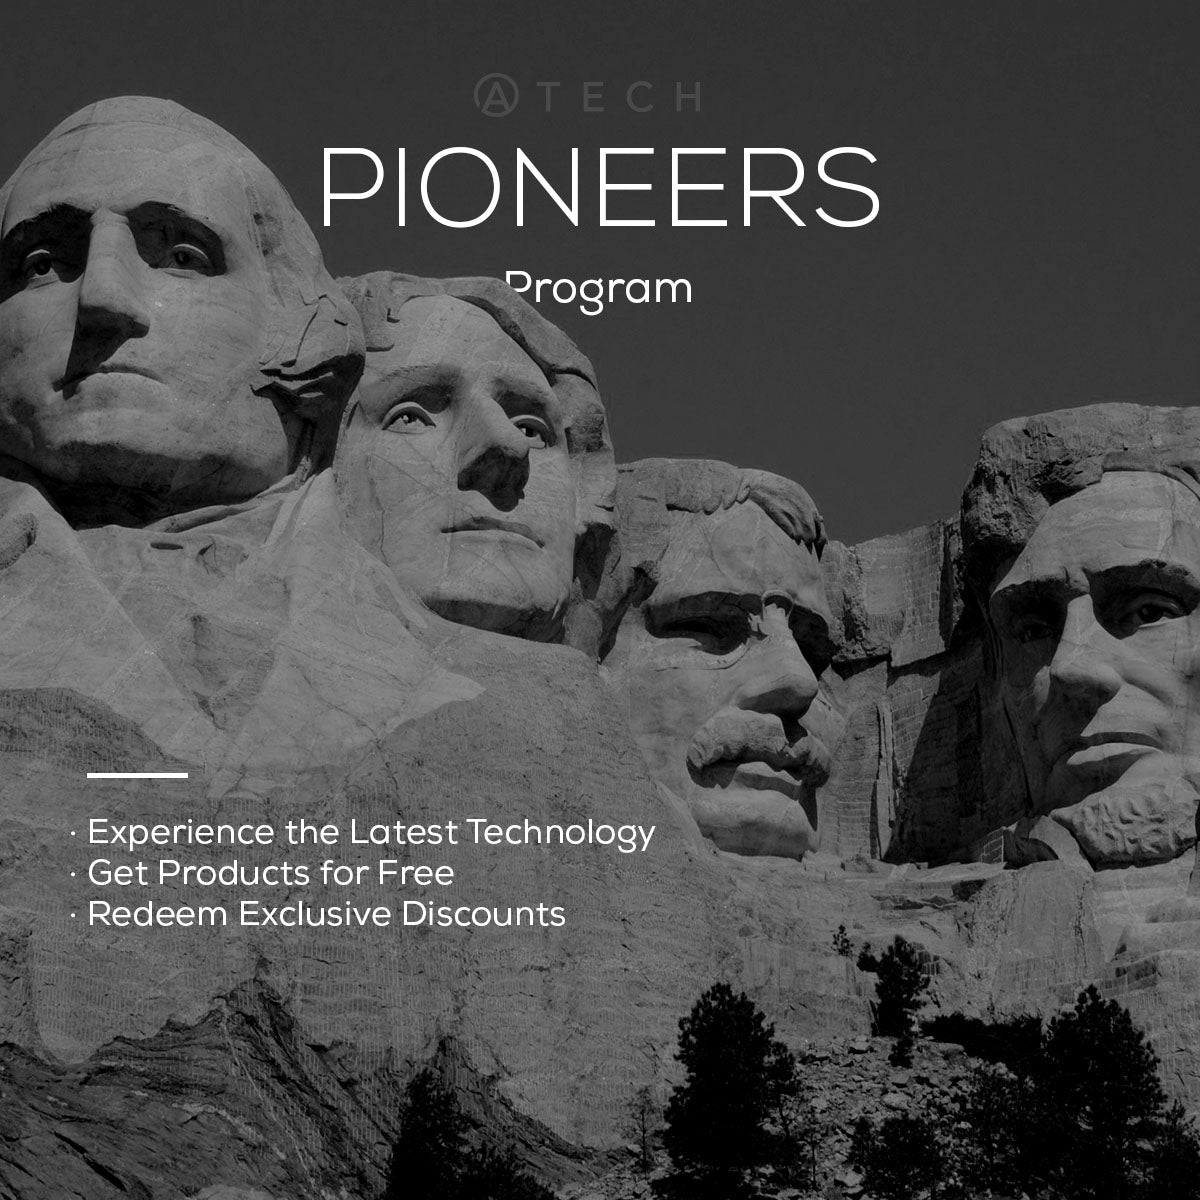 Atech Pioneers Program for free products, exclusive discounts and offers